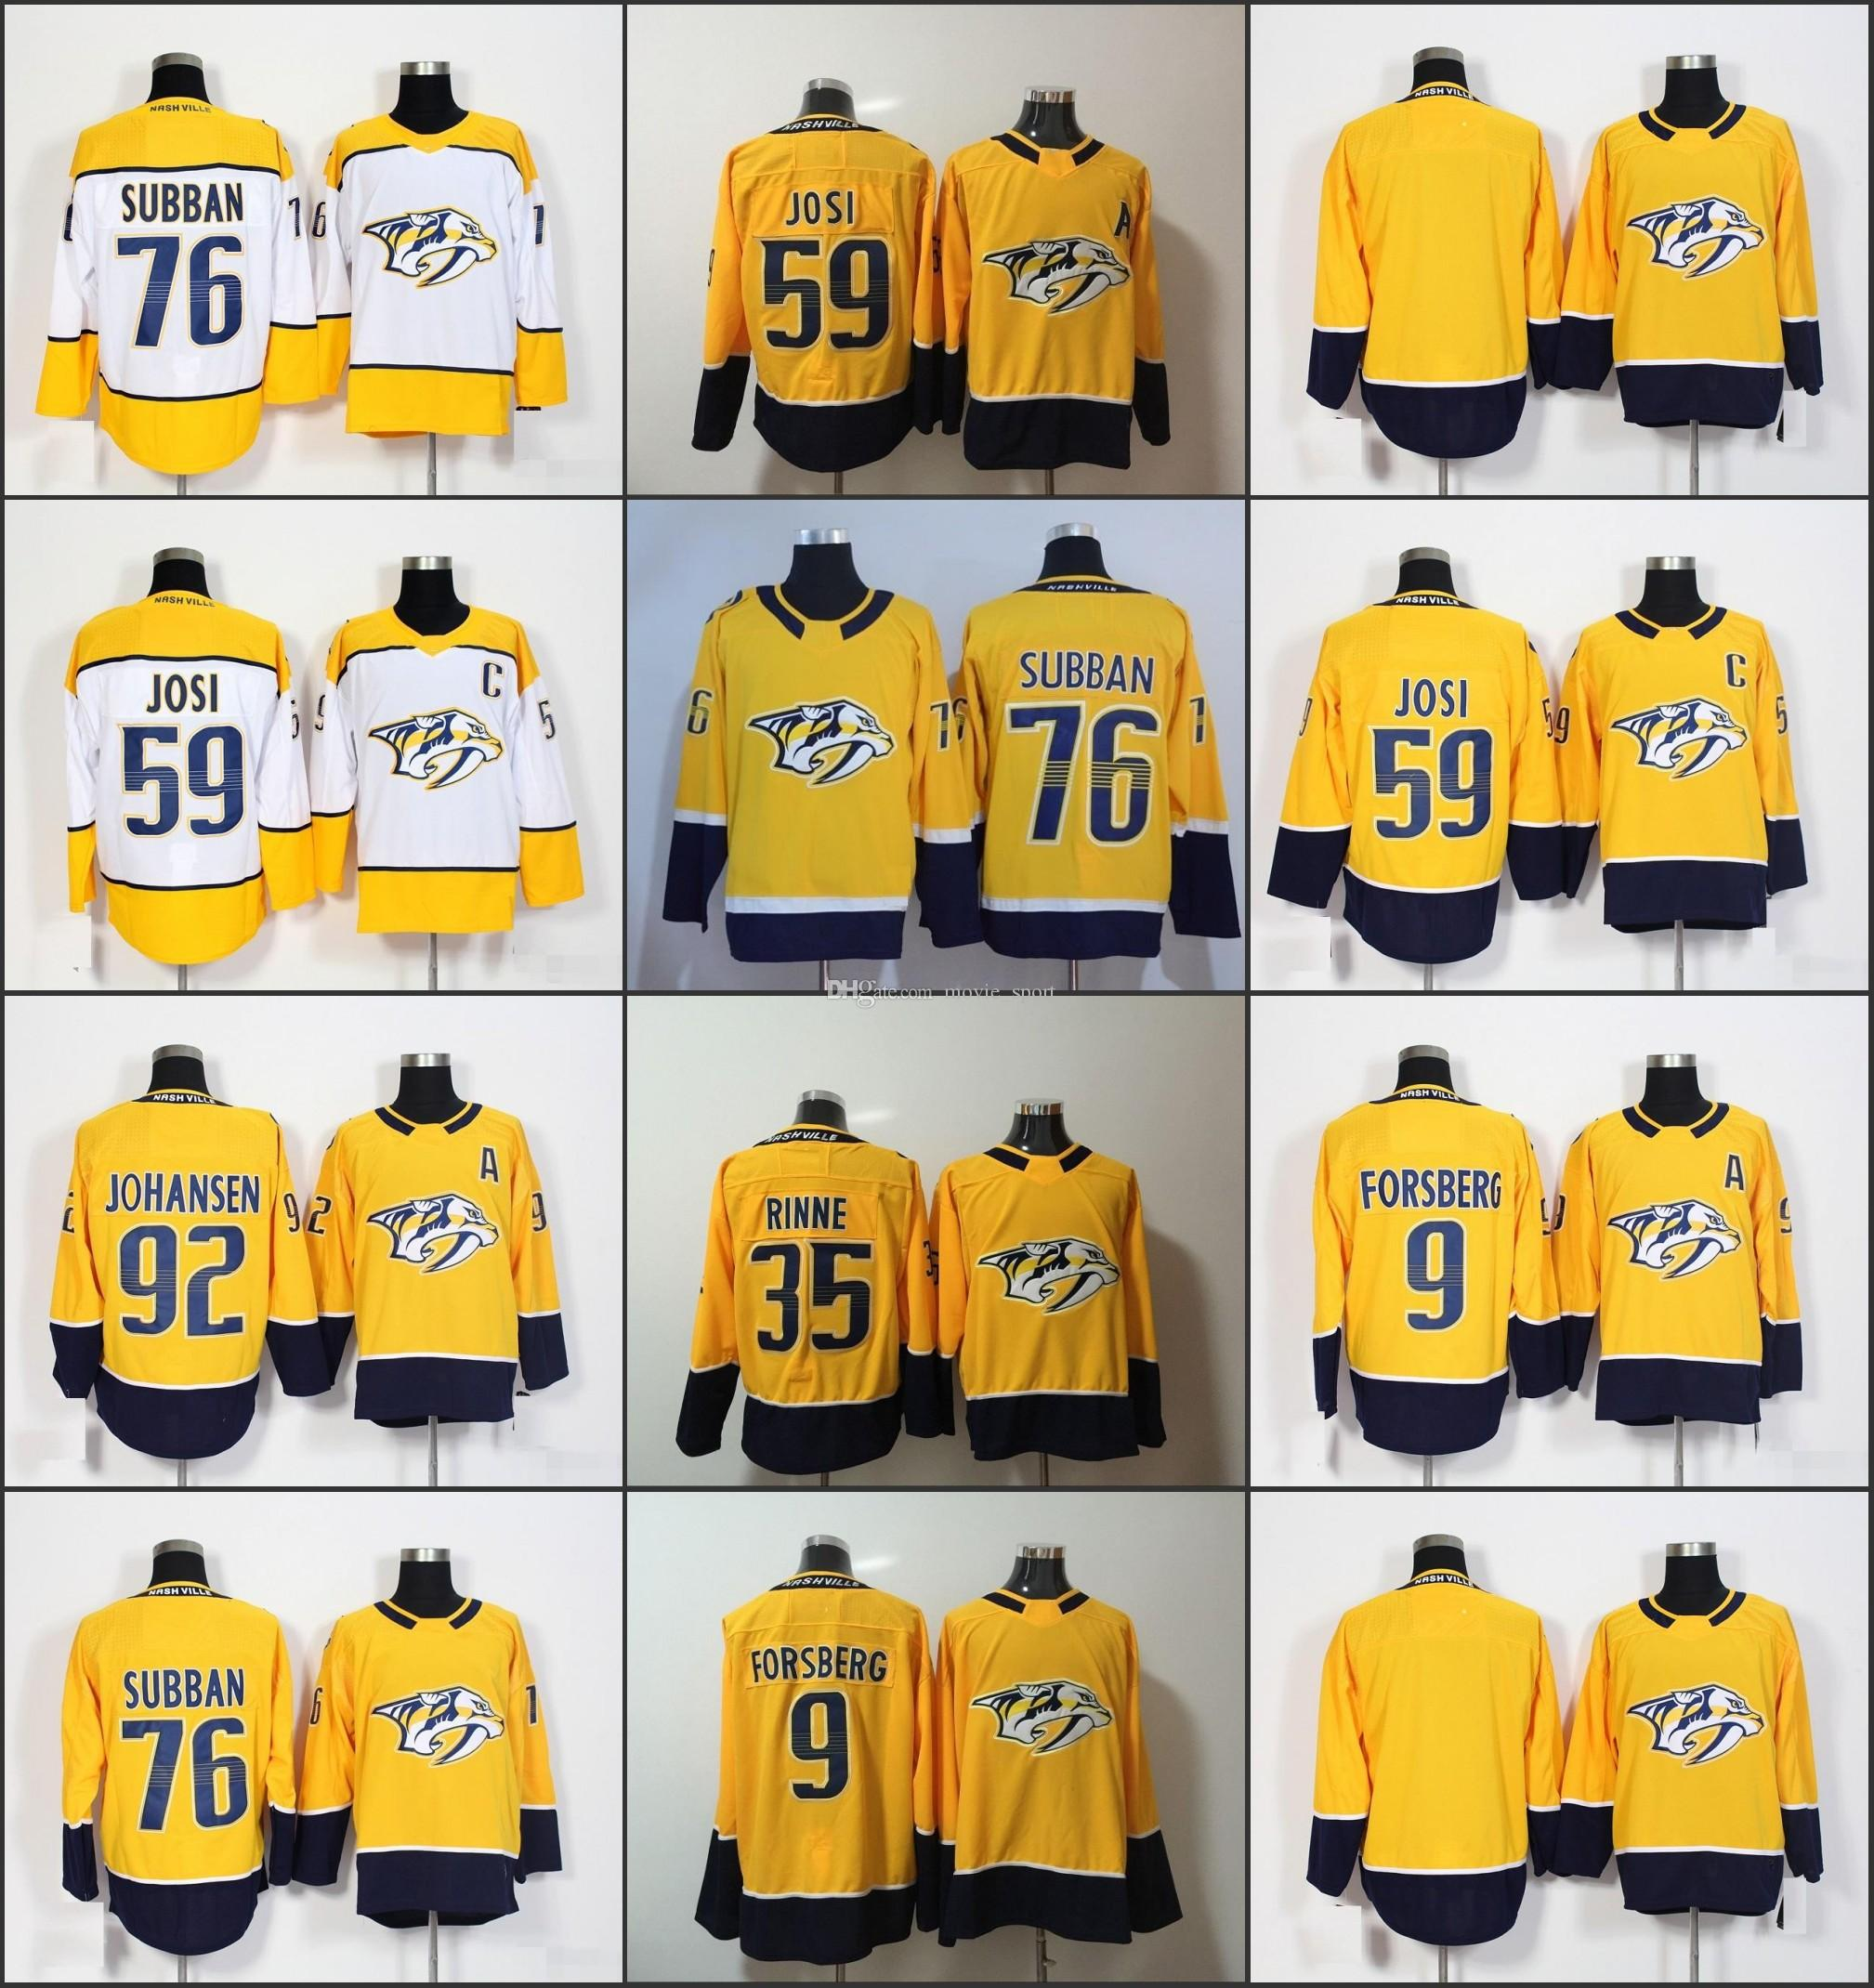 2019 Man Women Youth Nashville Predators Jerseys Kids Yellow White 76 PK  Subban 59 Roman Josi 92 Ryan Johansen 9 Filip Forsberg Pekka Rinne From  Movie sport ... e7deb32cb